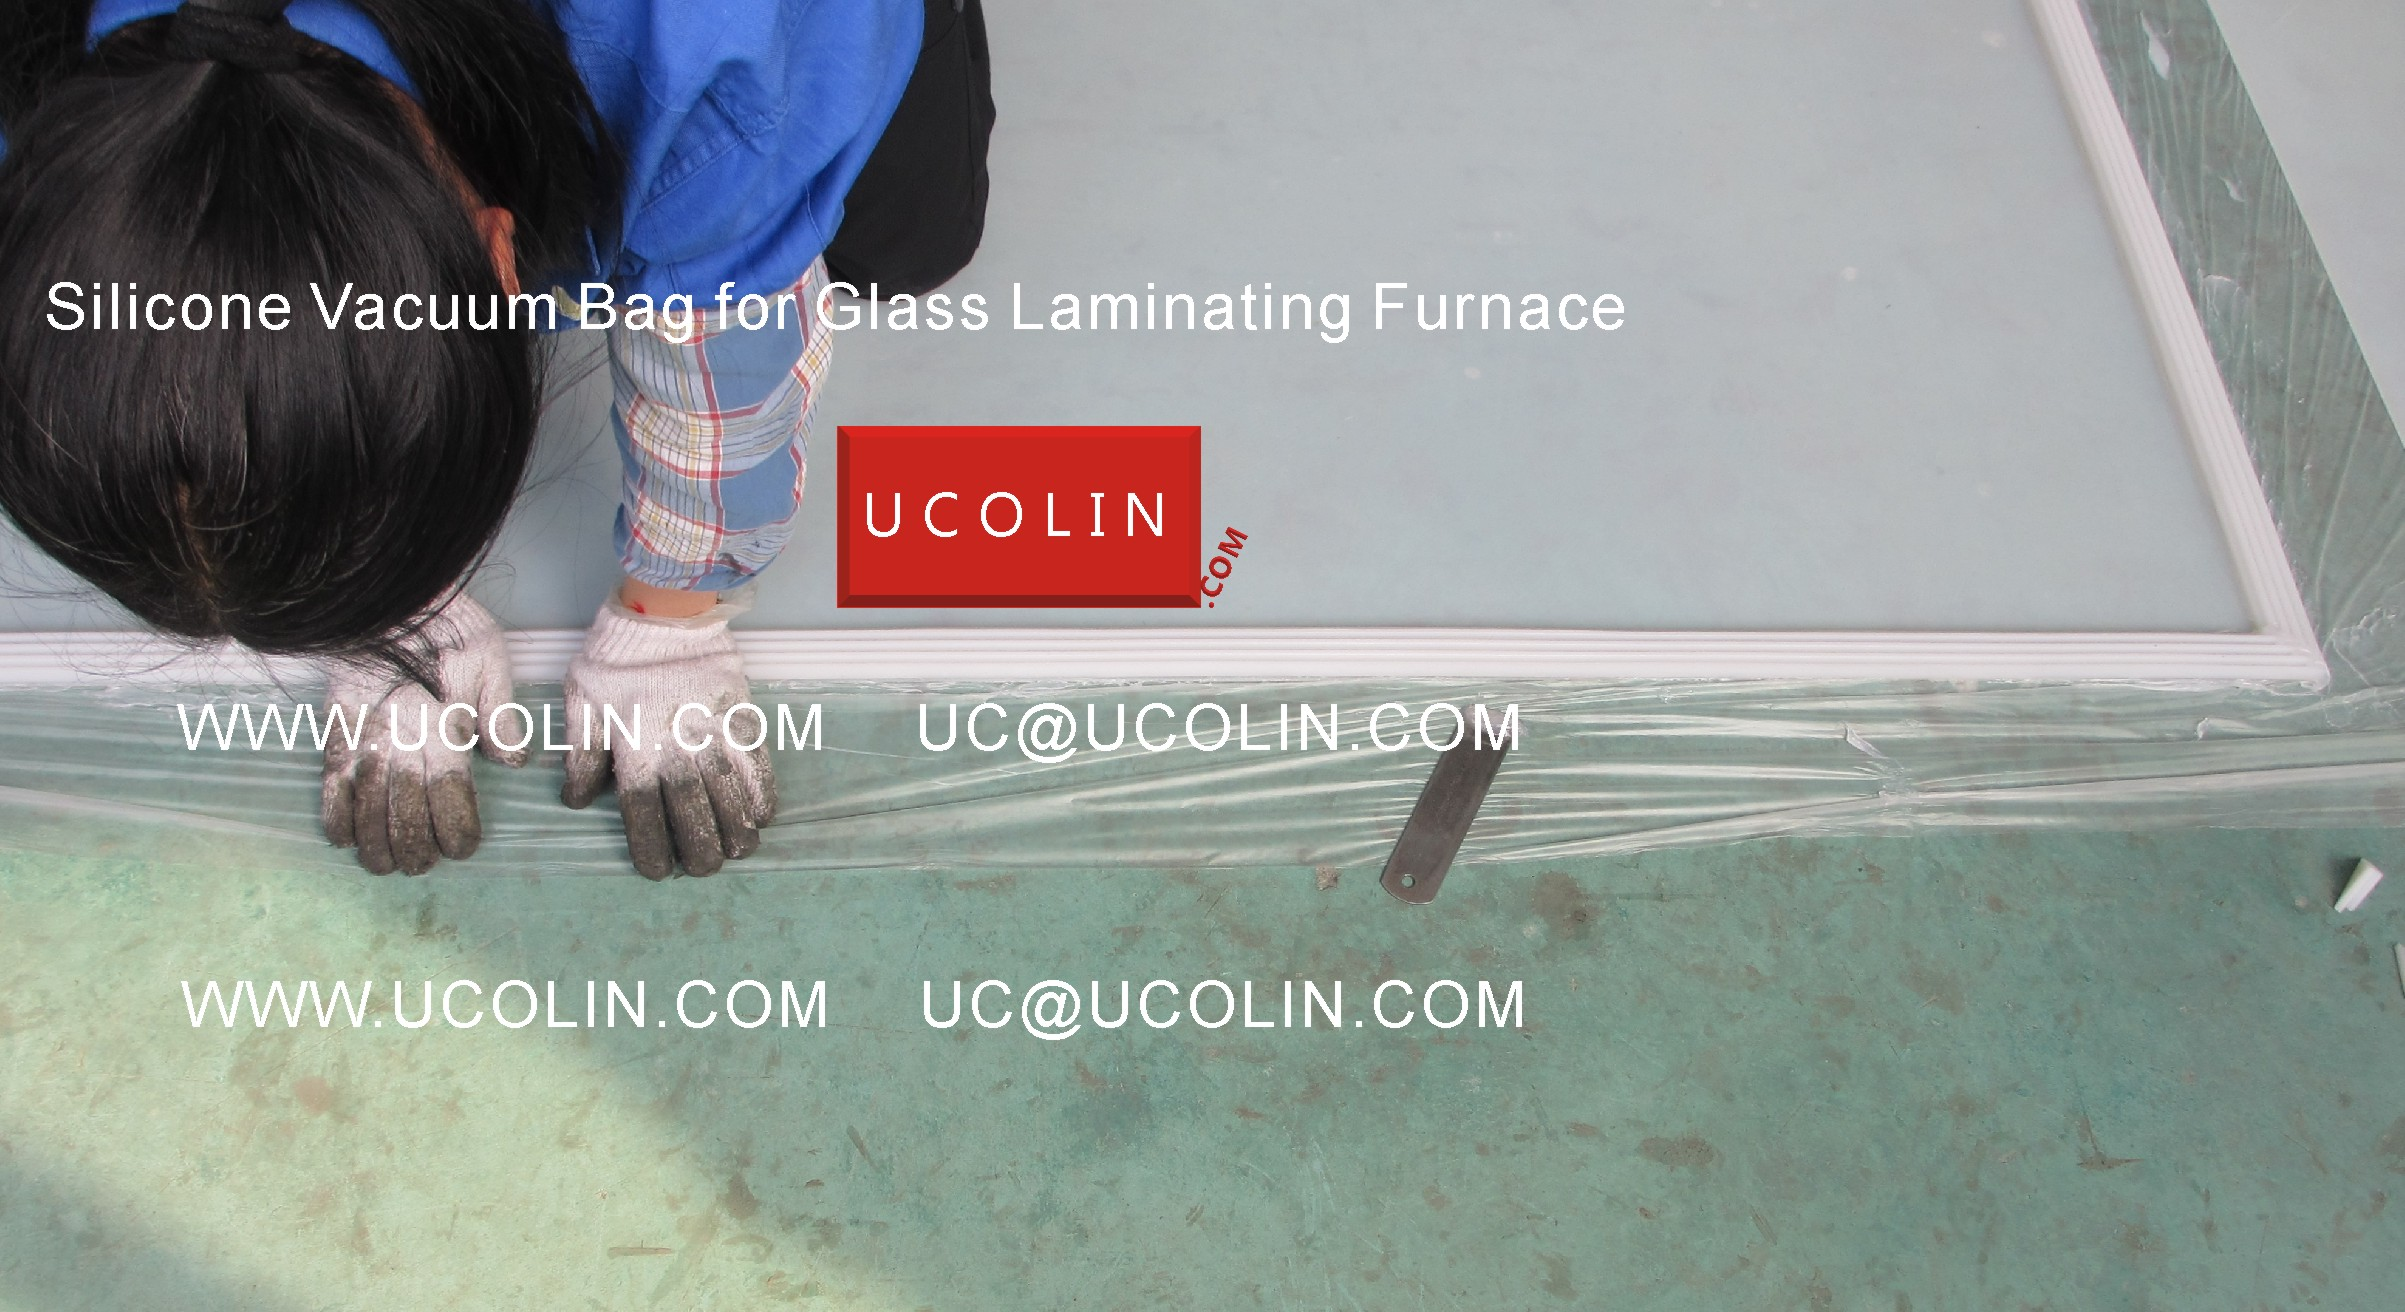 02 Producing of Silicone Vacuum Bag for Glass Laminating Furnace